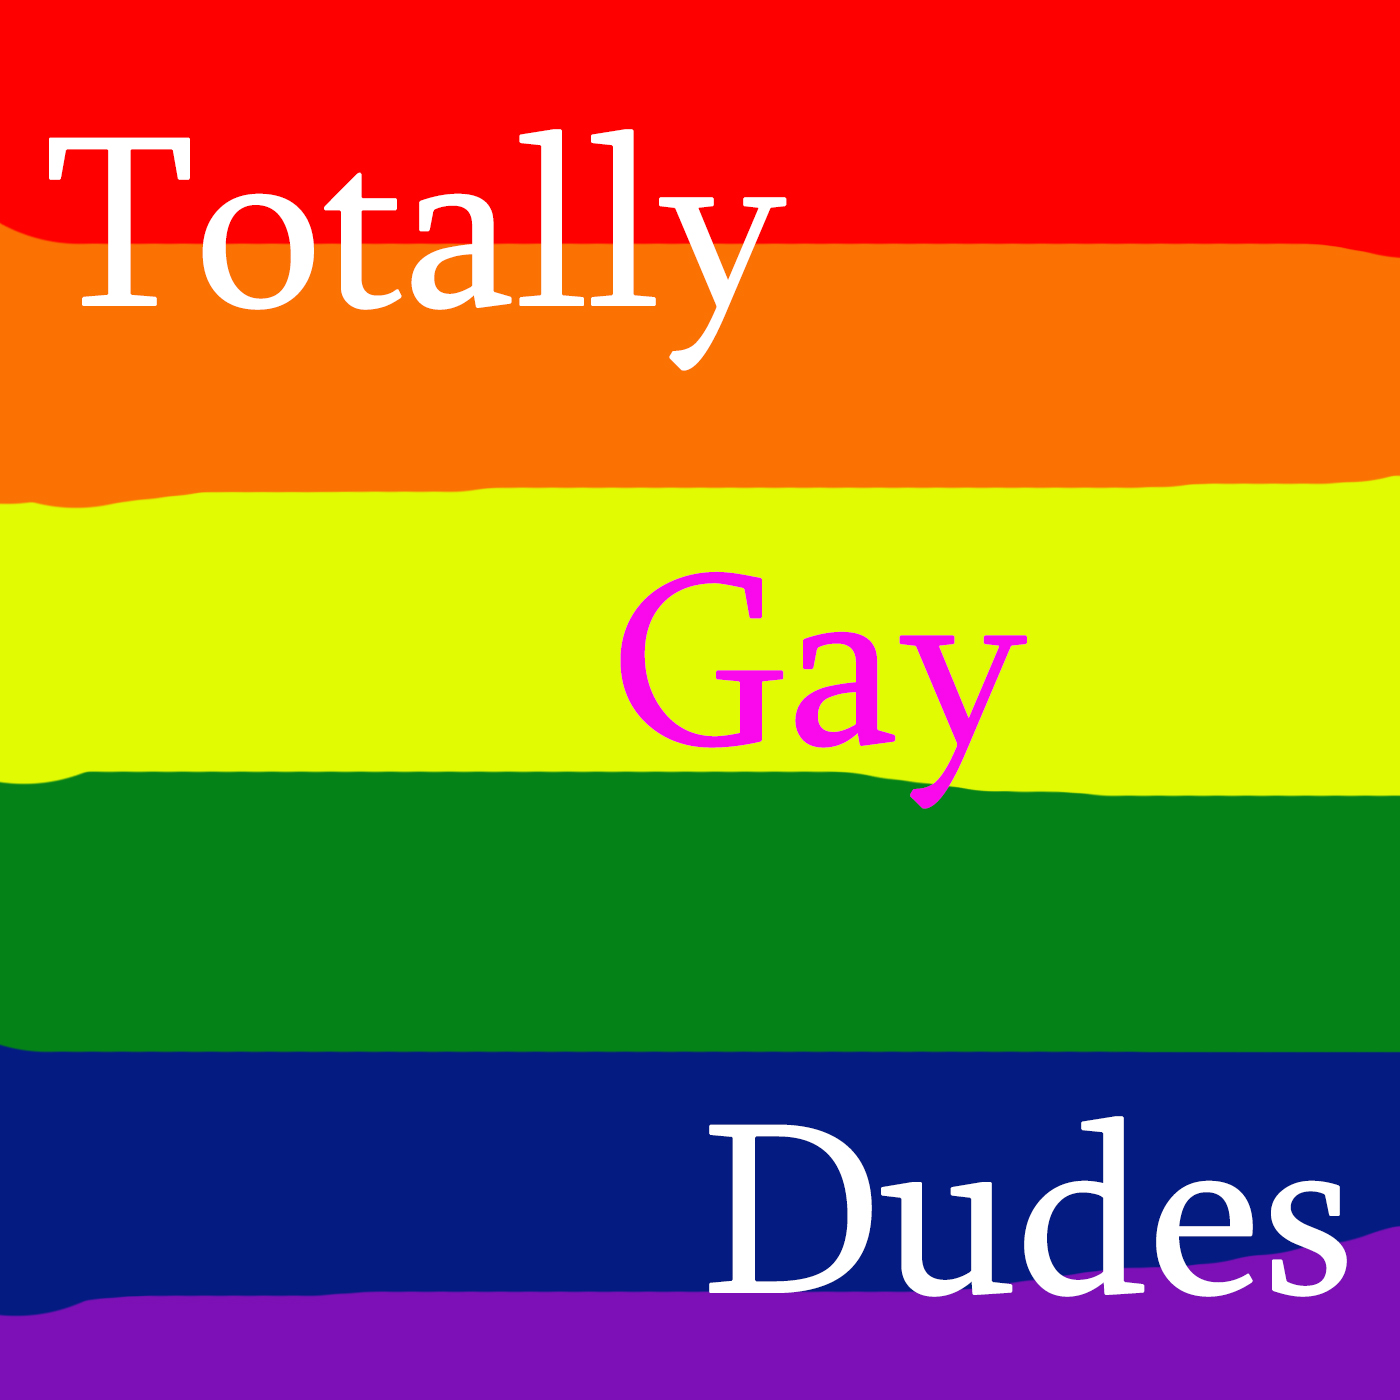 Totally Gay Dudes